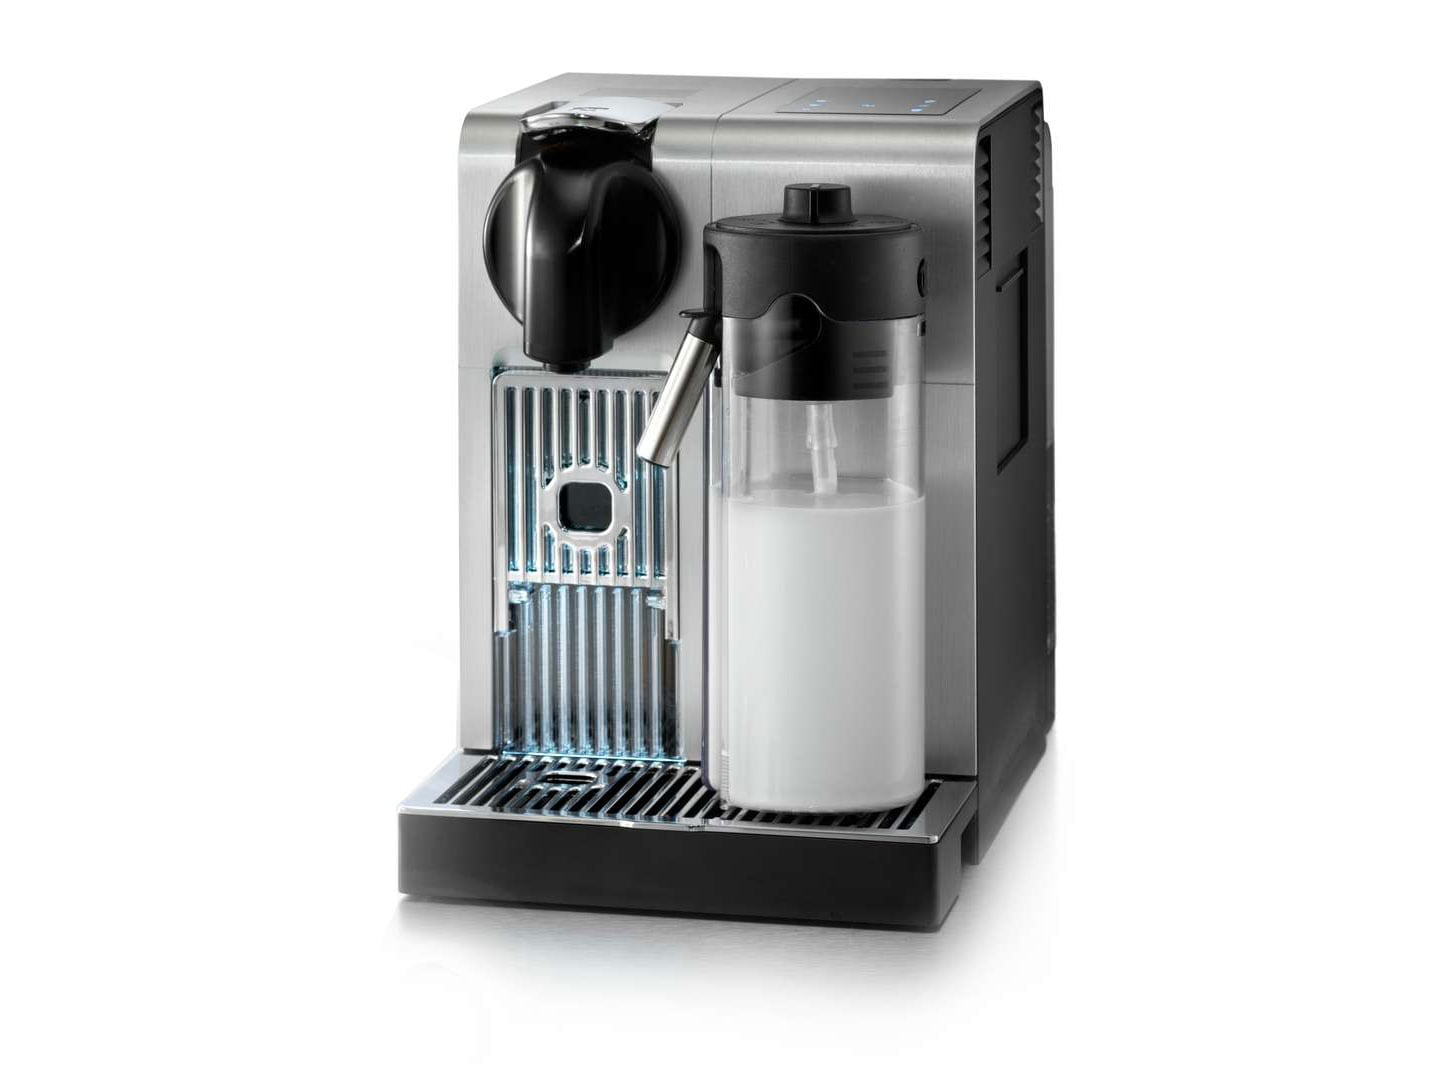 Nespresso machine Lattissima Pro - EN 750.MB